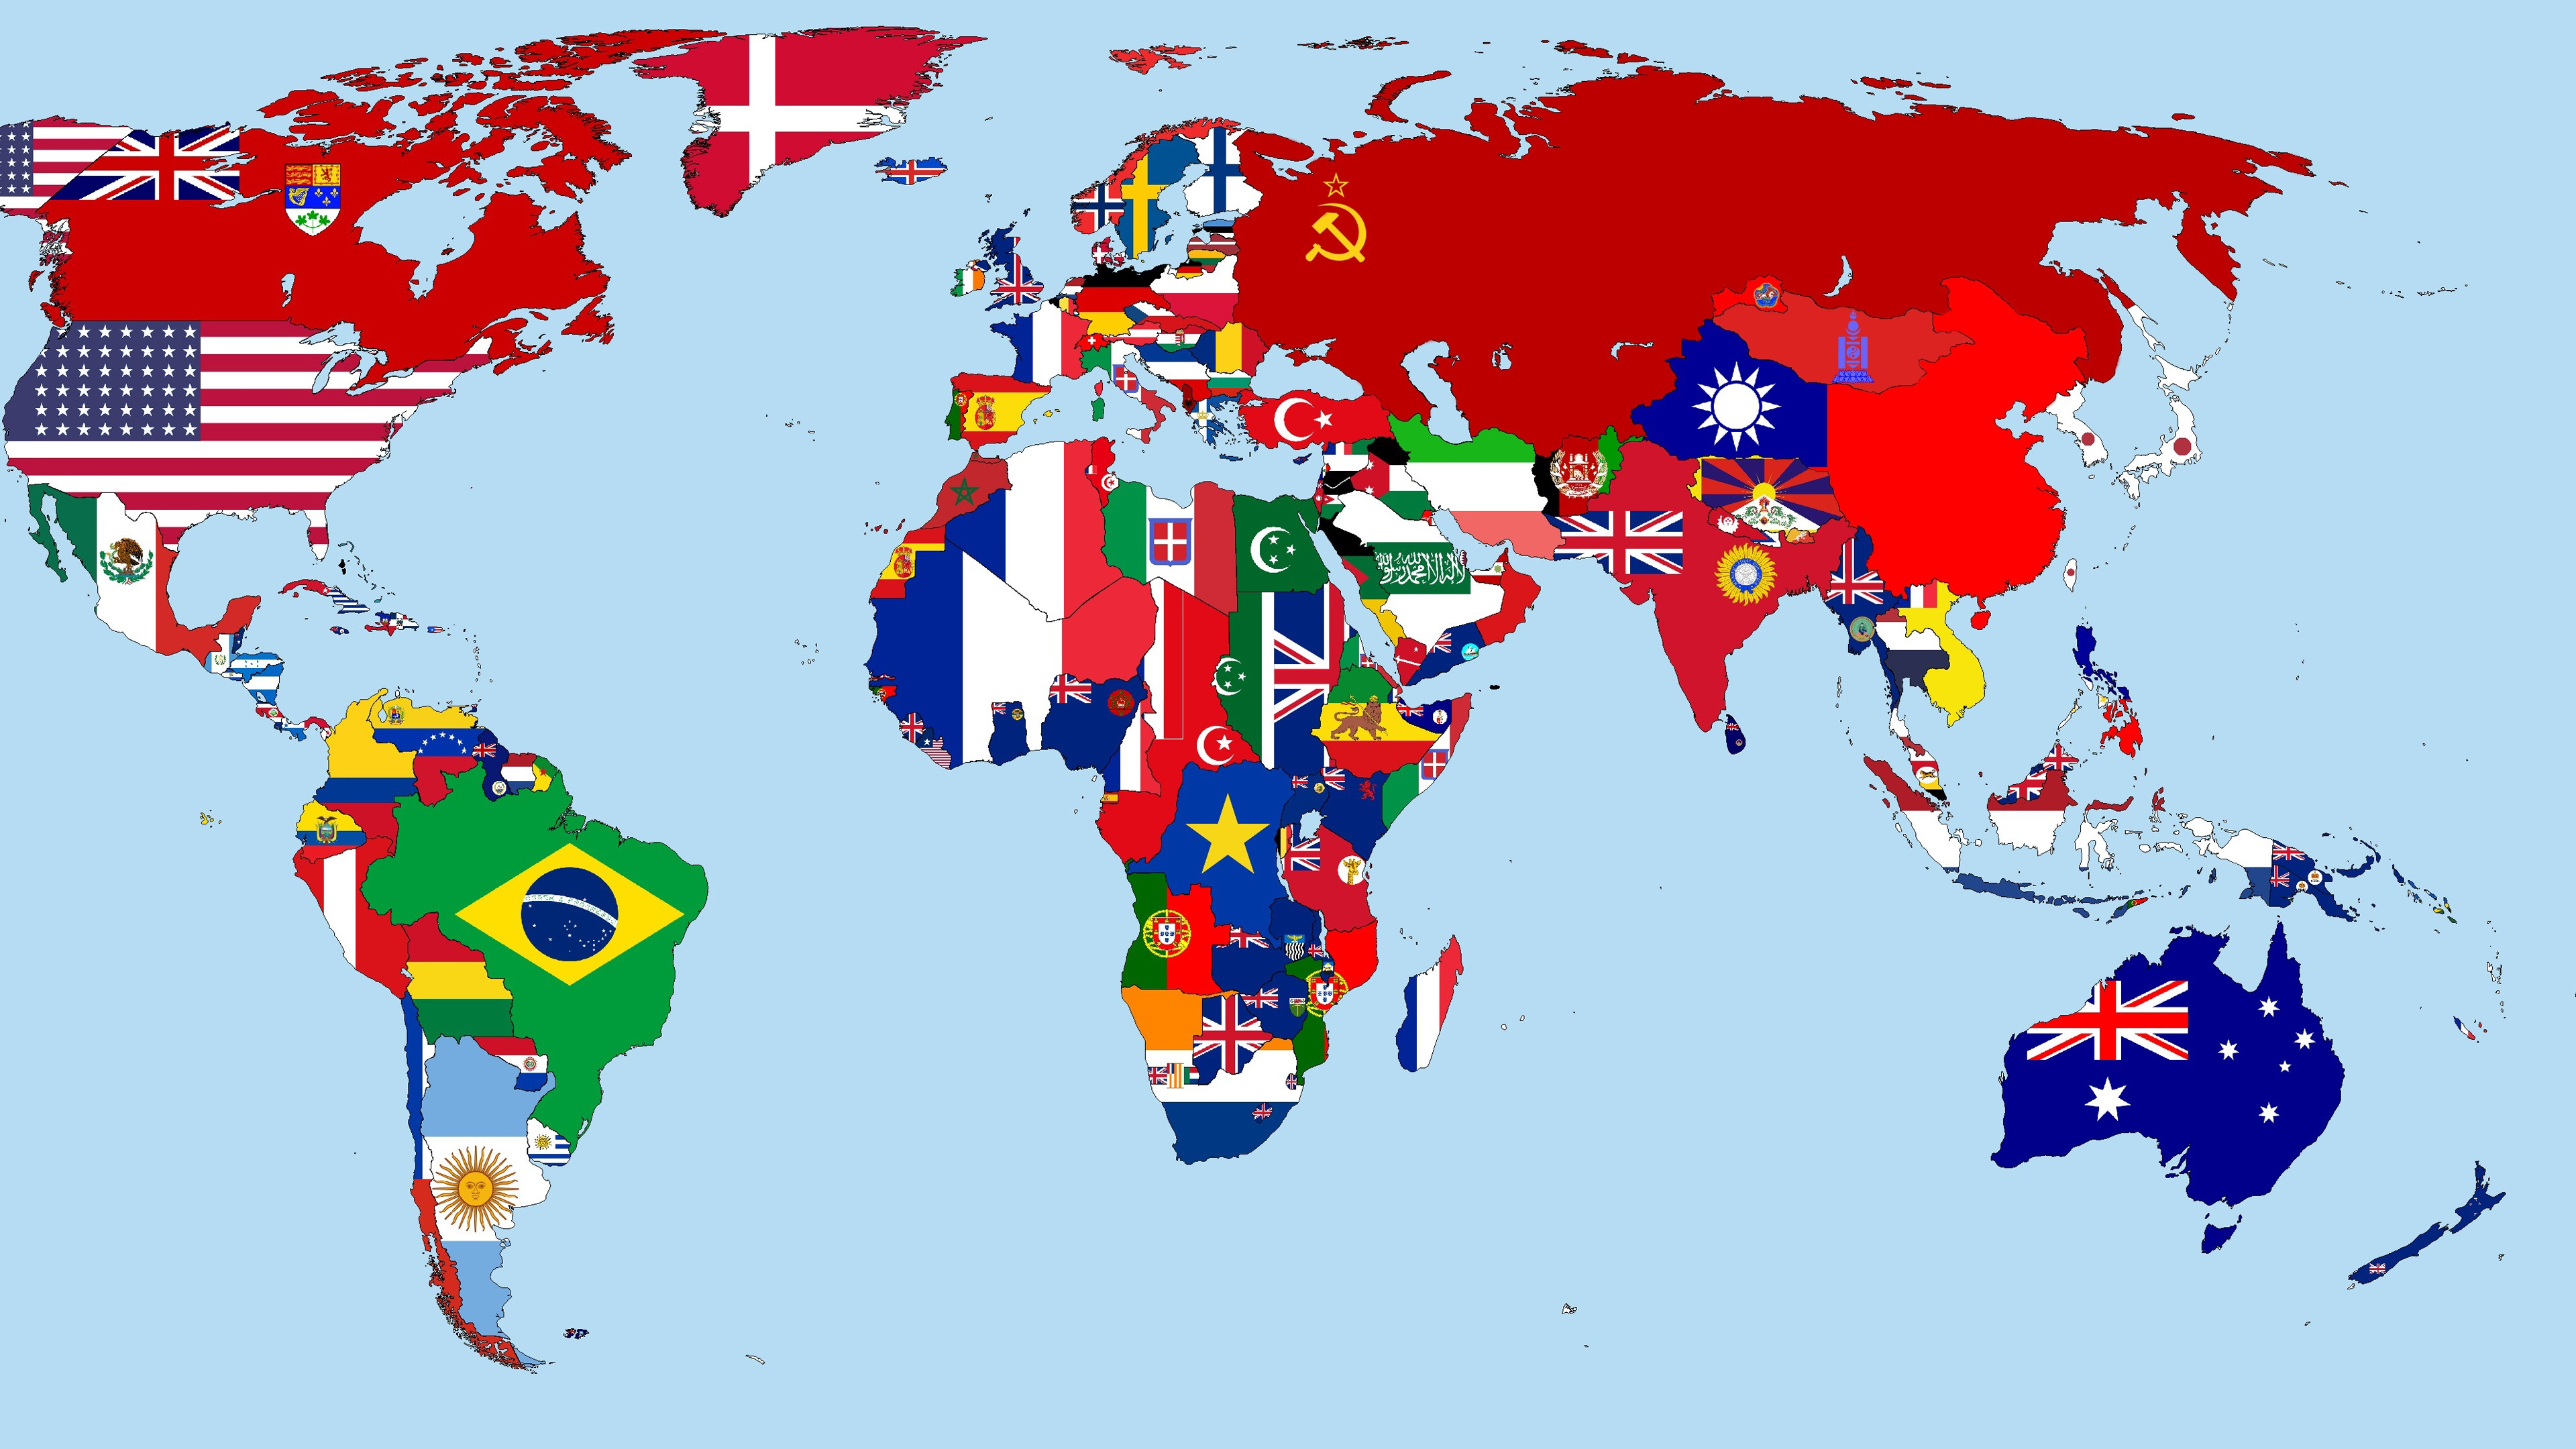 Wallpaper World Map In 1930 Flags Countries 3840x2160 Uhd 4k